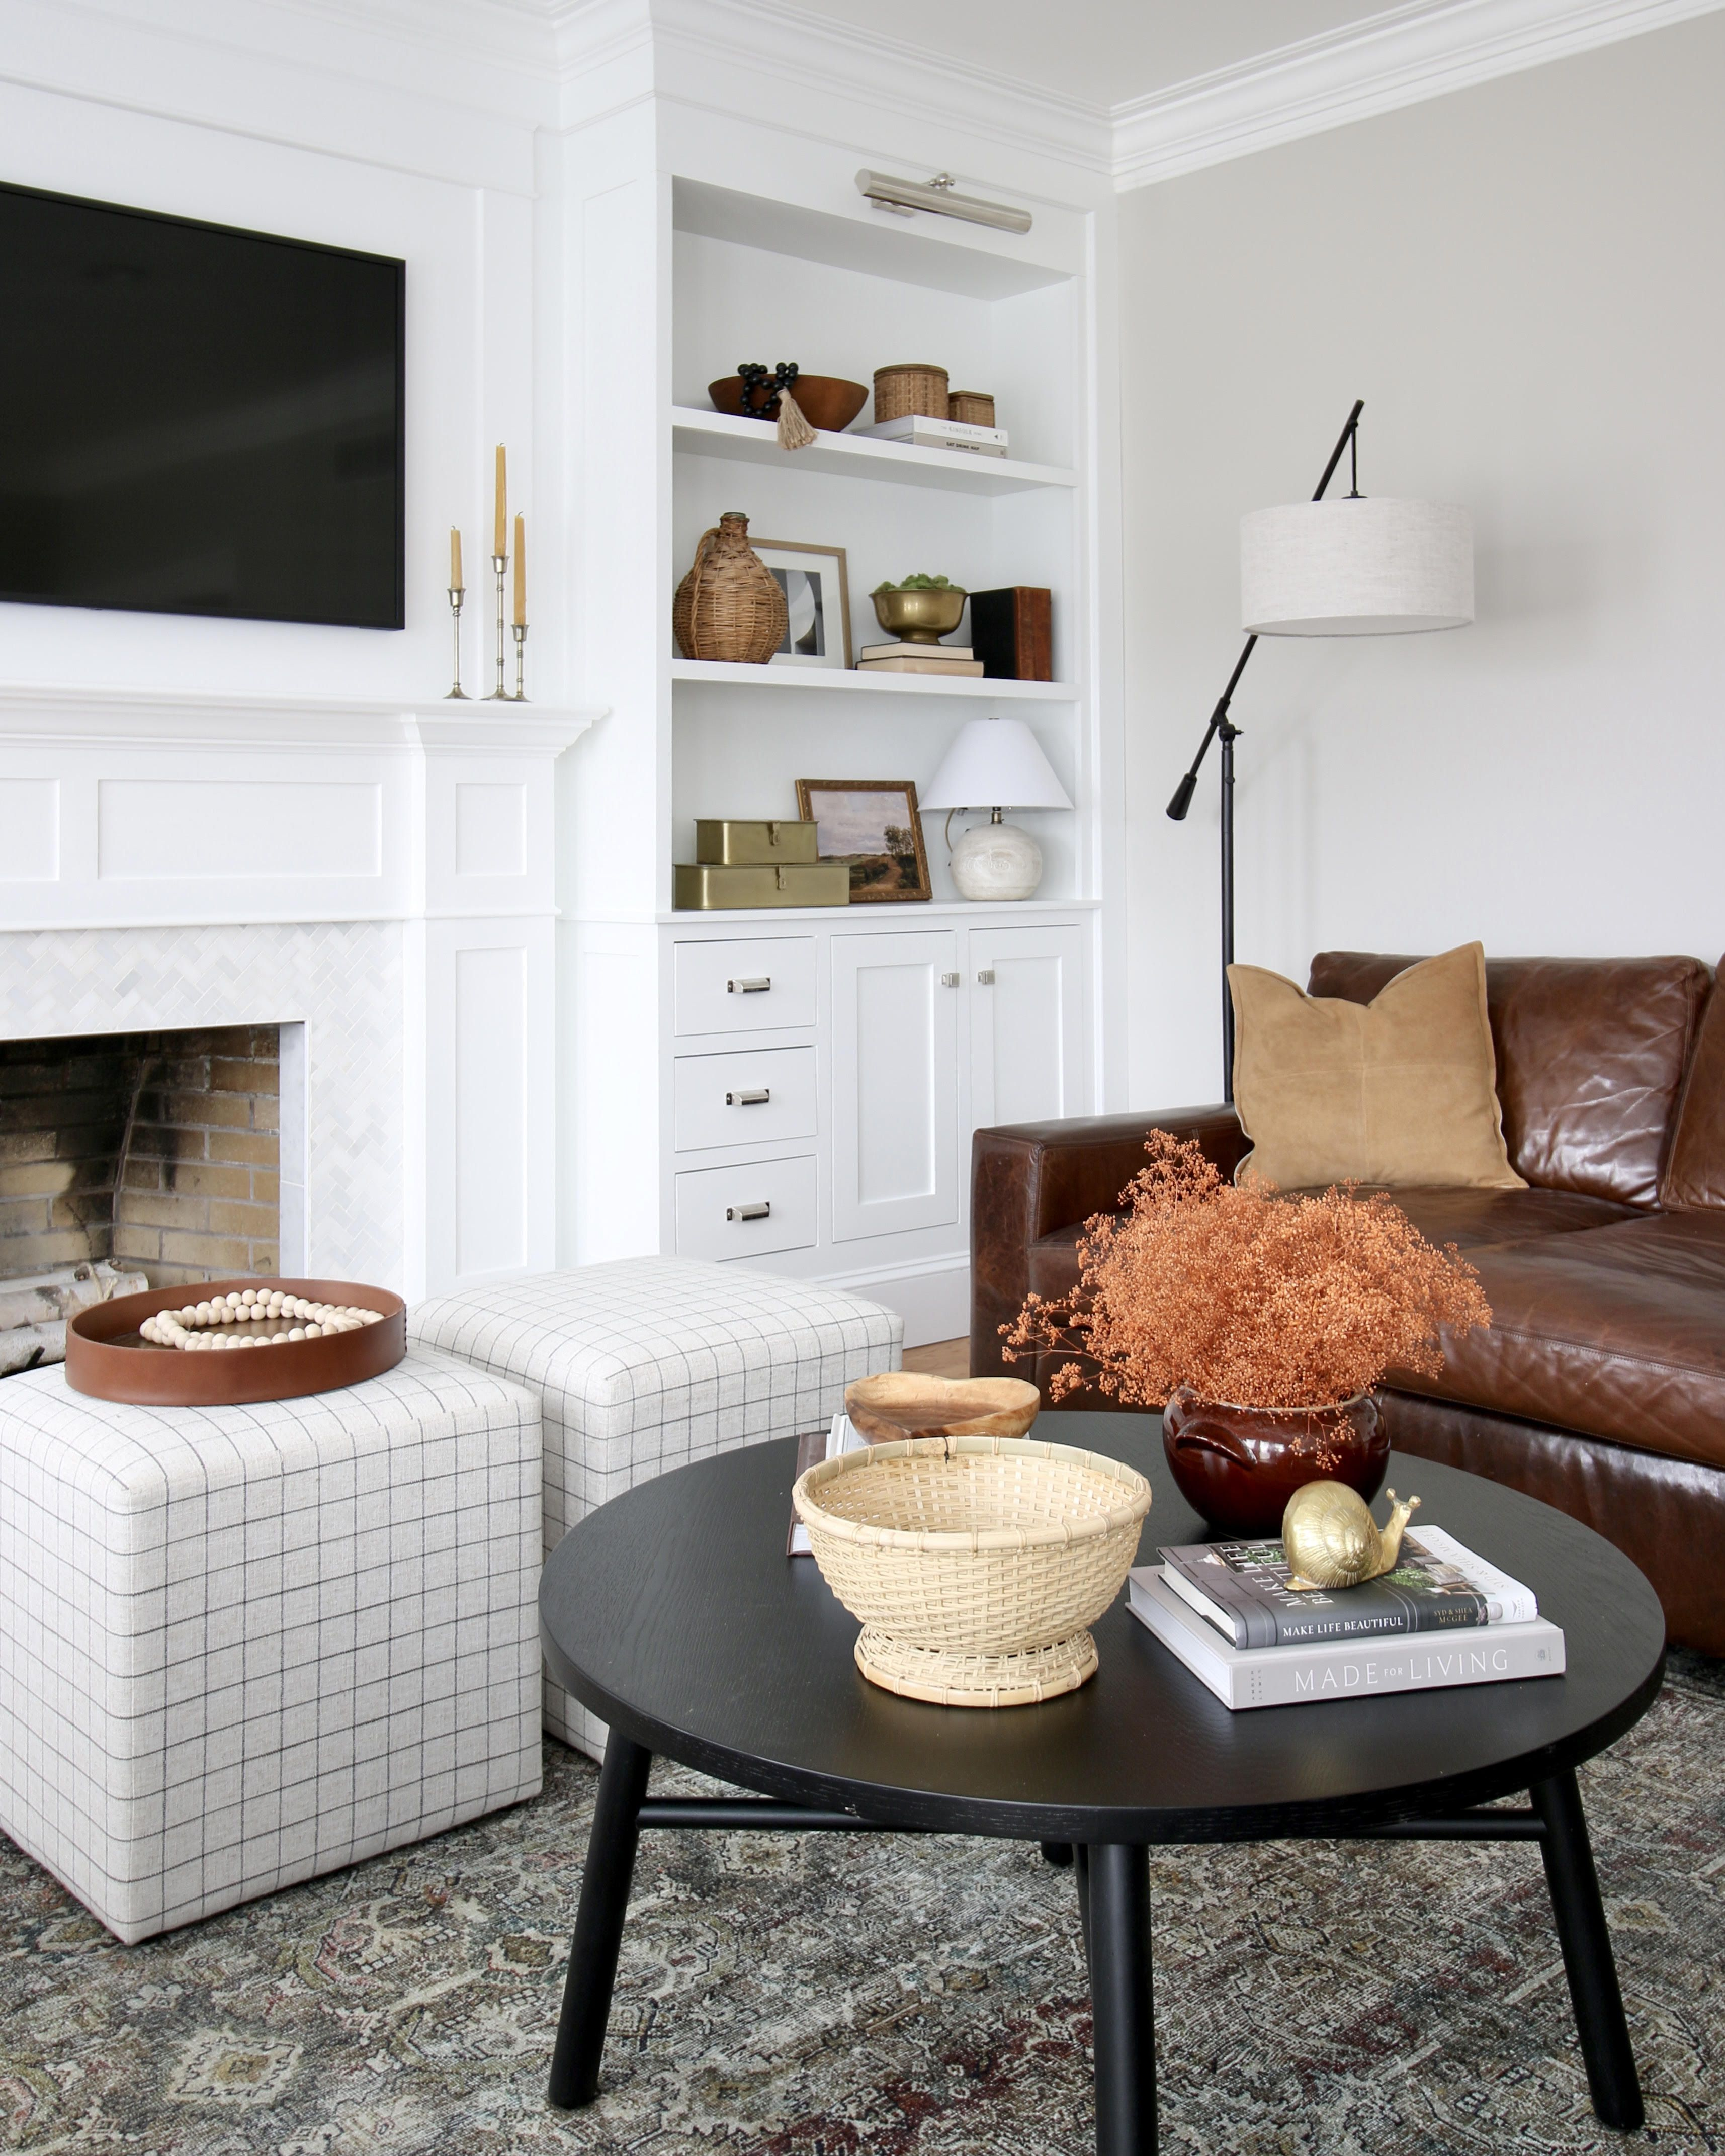 9 Design Enthusiasts Share Their Favorite Target Home Finds